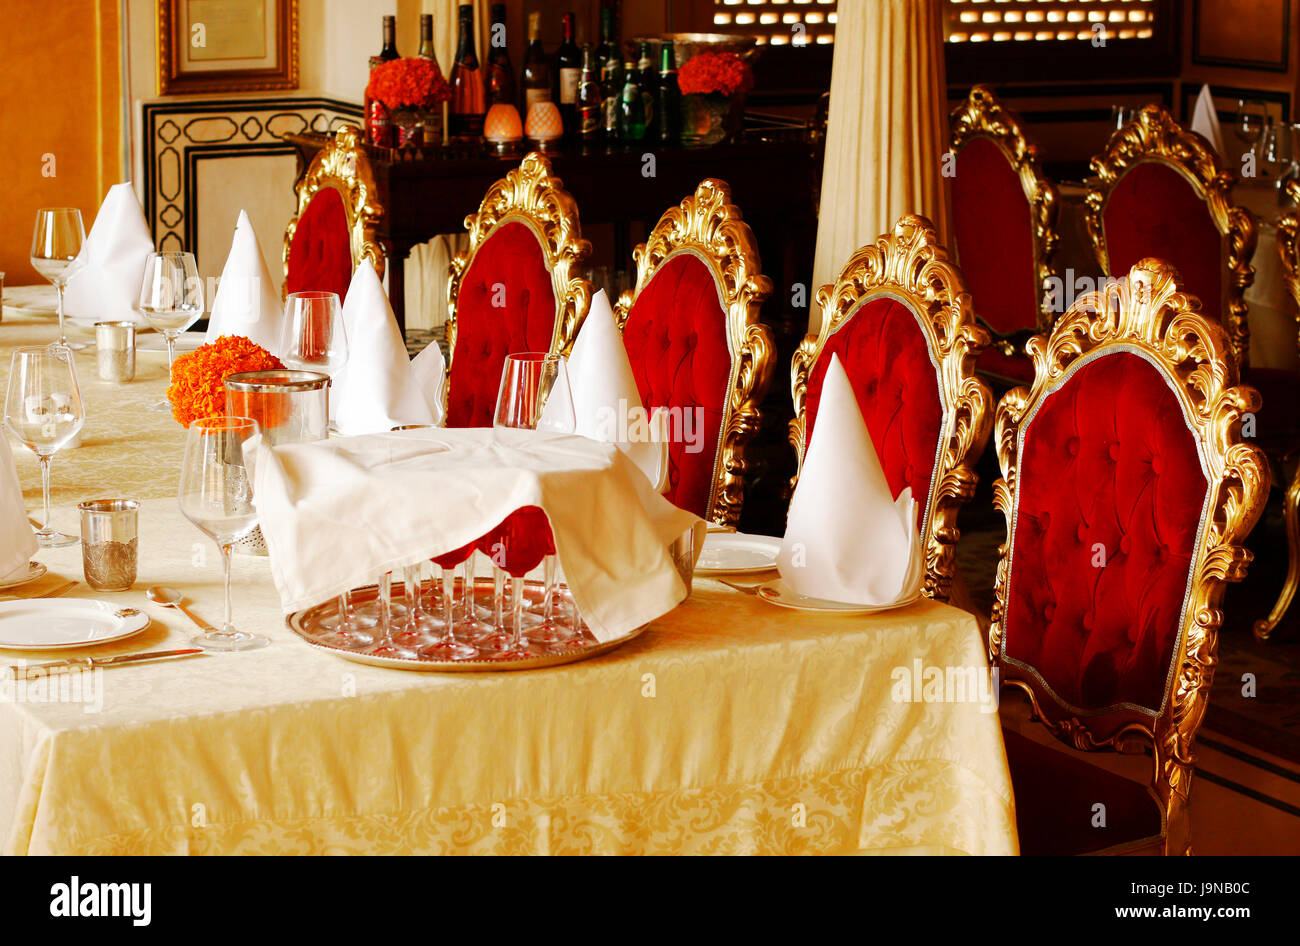 Single row of chairs of Dinning table in 1135 AD restaurant inside Amber fort, Jaipur, Rajasthan, India interior - Stock Image